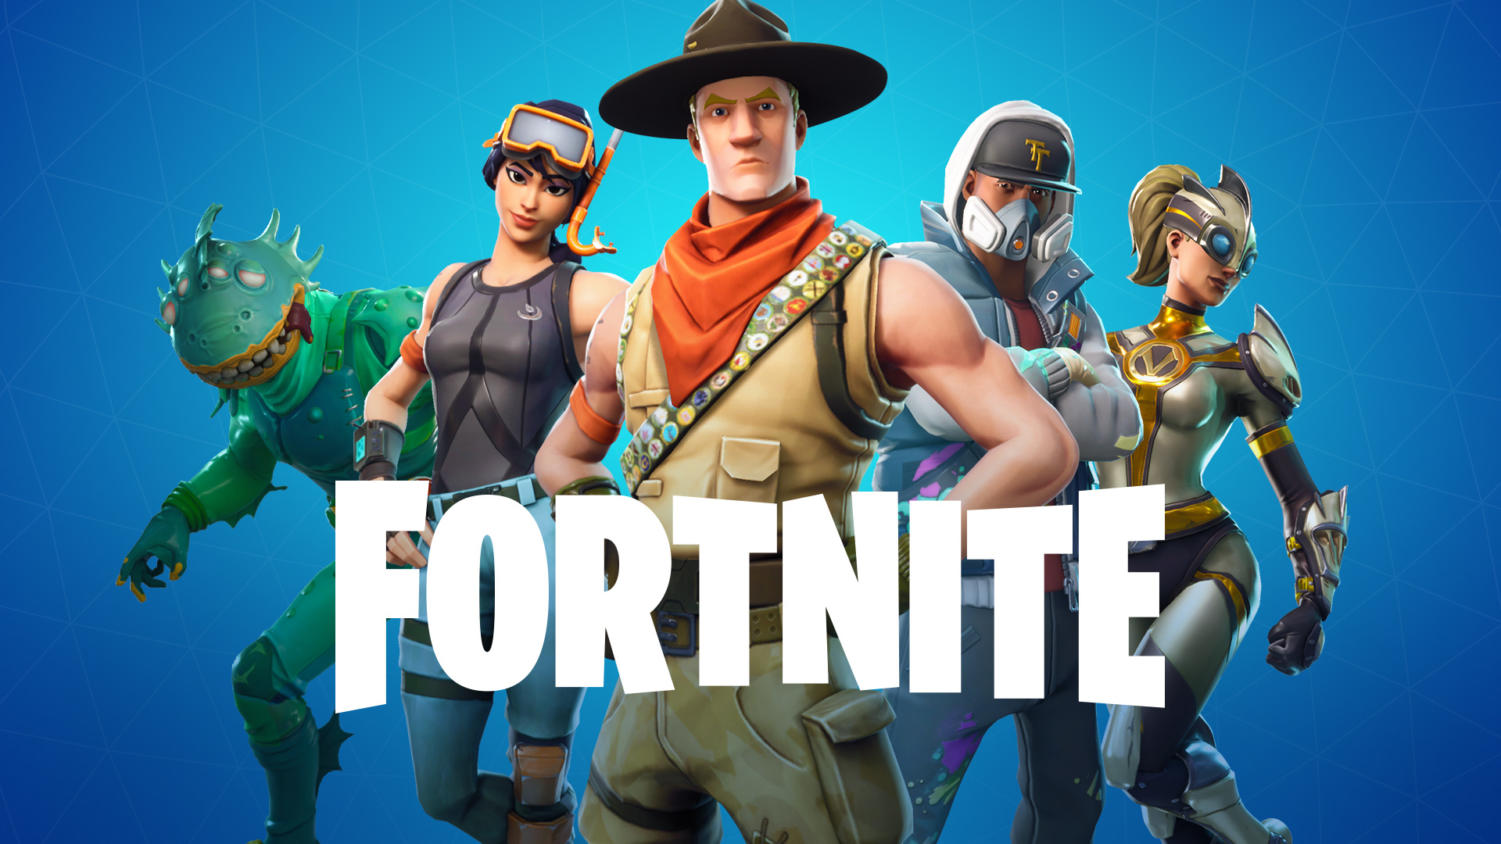 Fortnite has gotten into legal issues regarding their dances and licensing